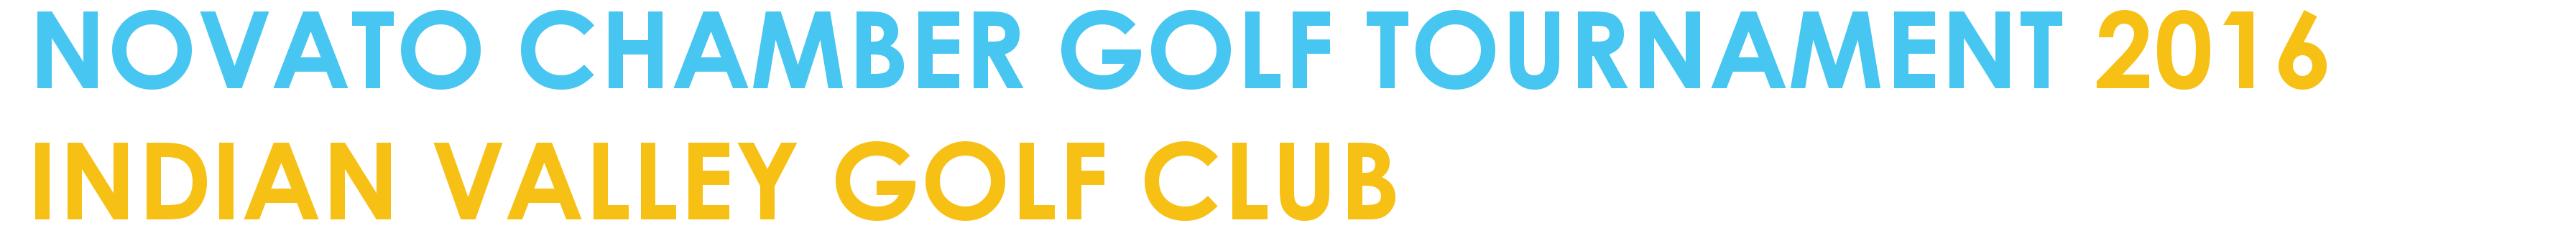 GOLF_TITLE_FULL_PAGE.png